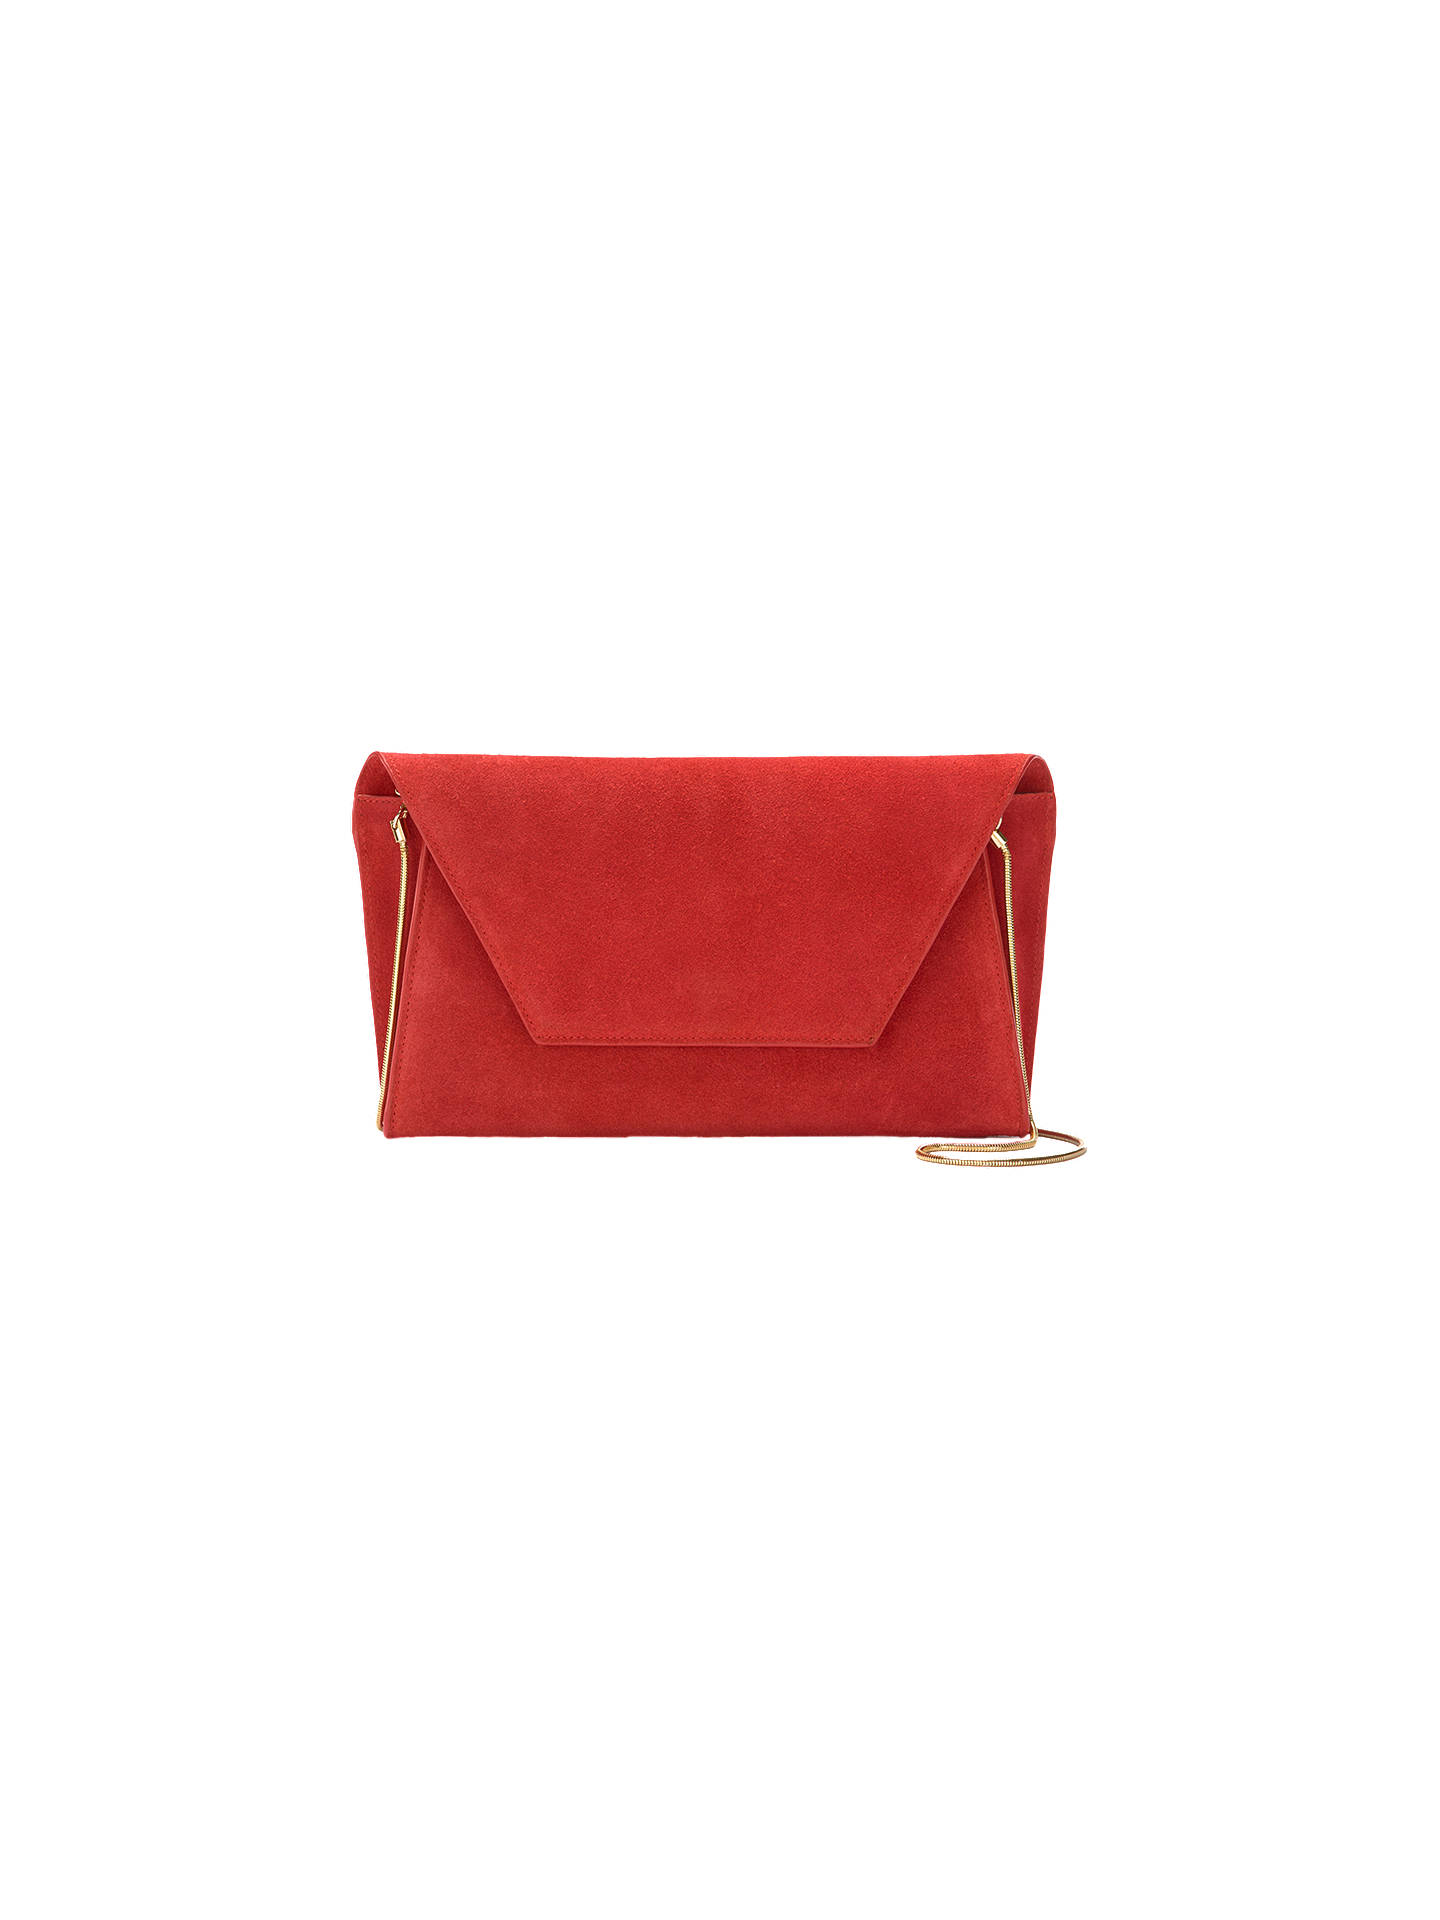 Mint Velvet Millie Suede Clutch Bag Red Online At Johnlewis